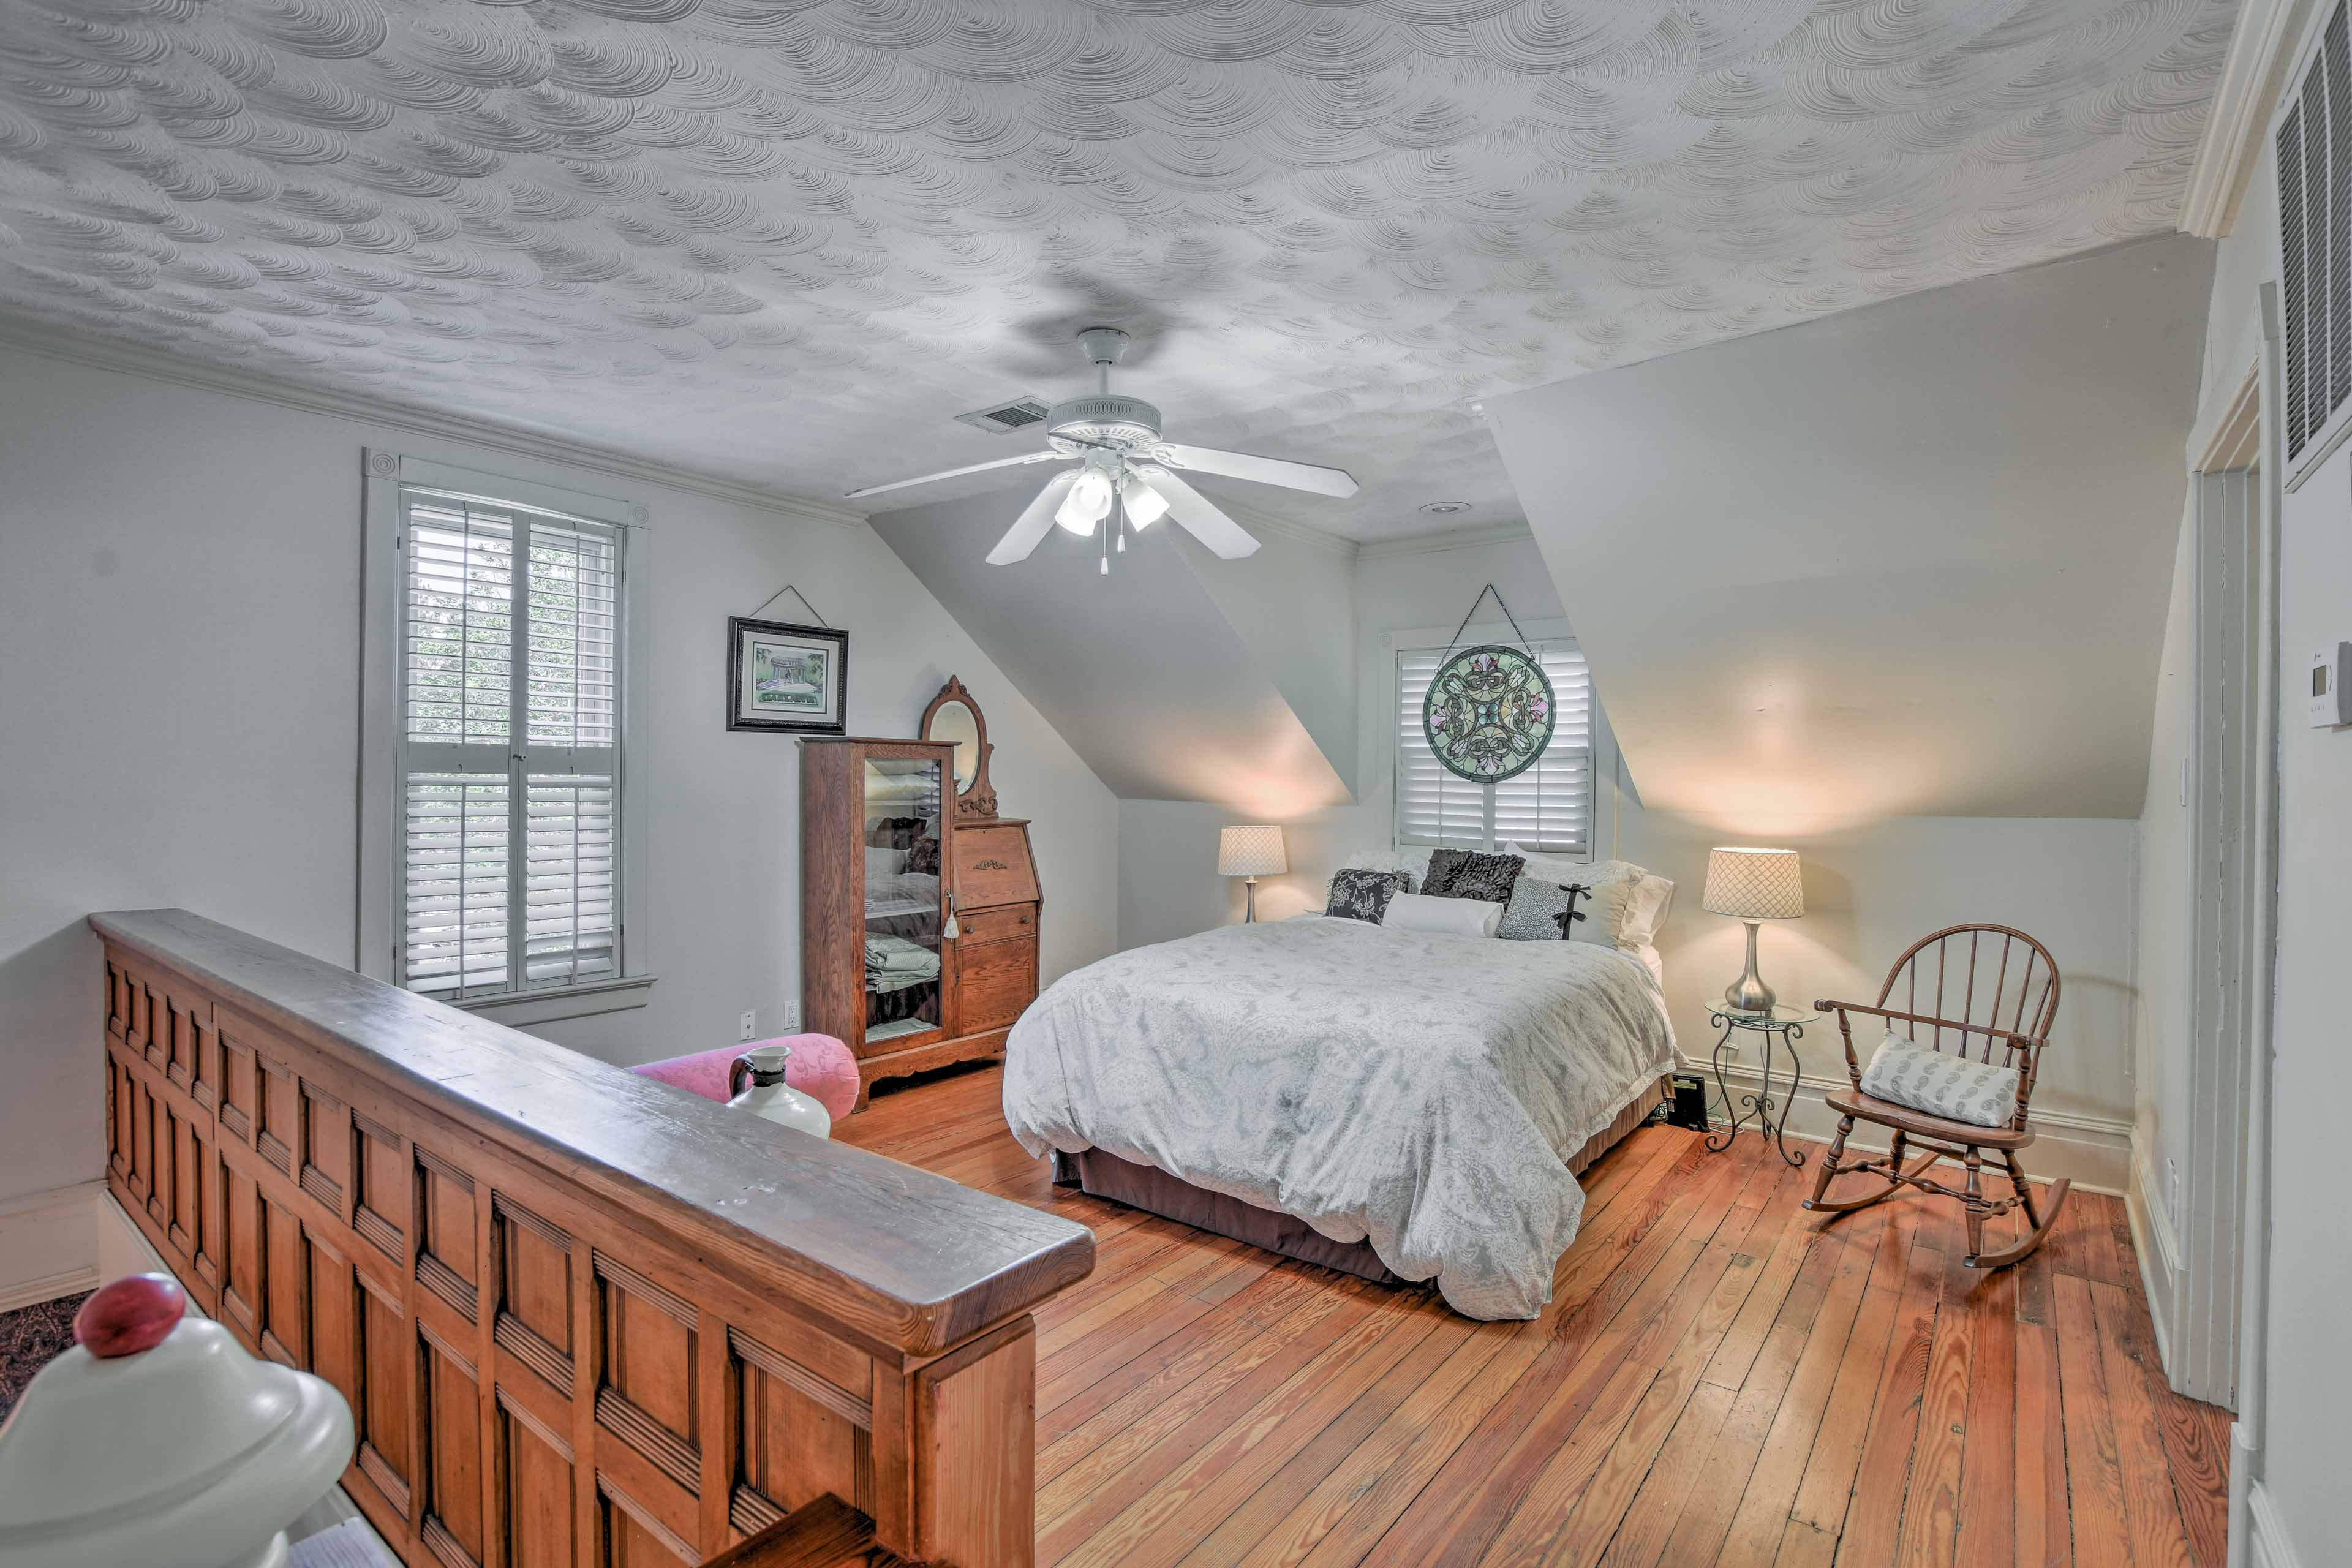 The spacious loft offers a king-sized bed.